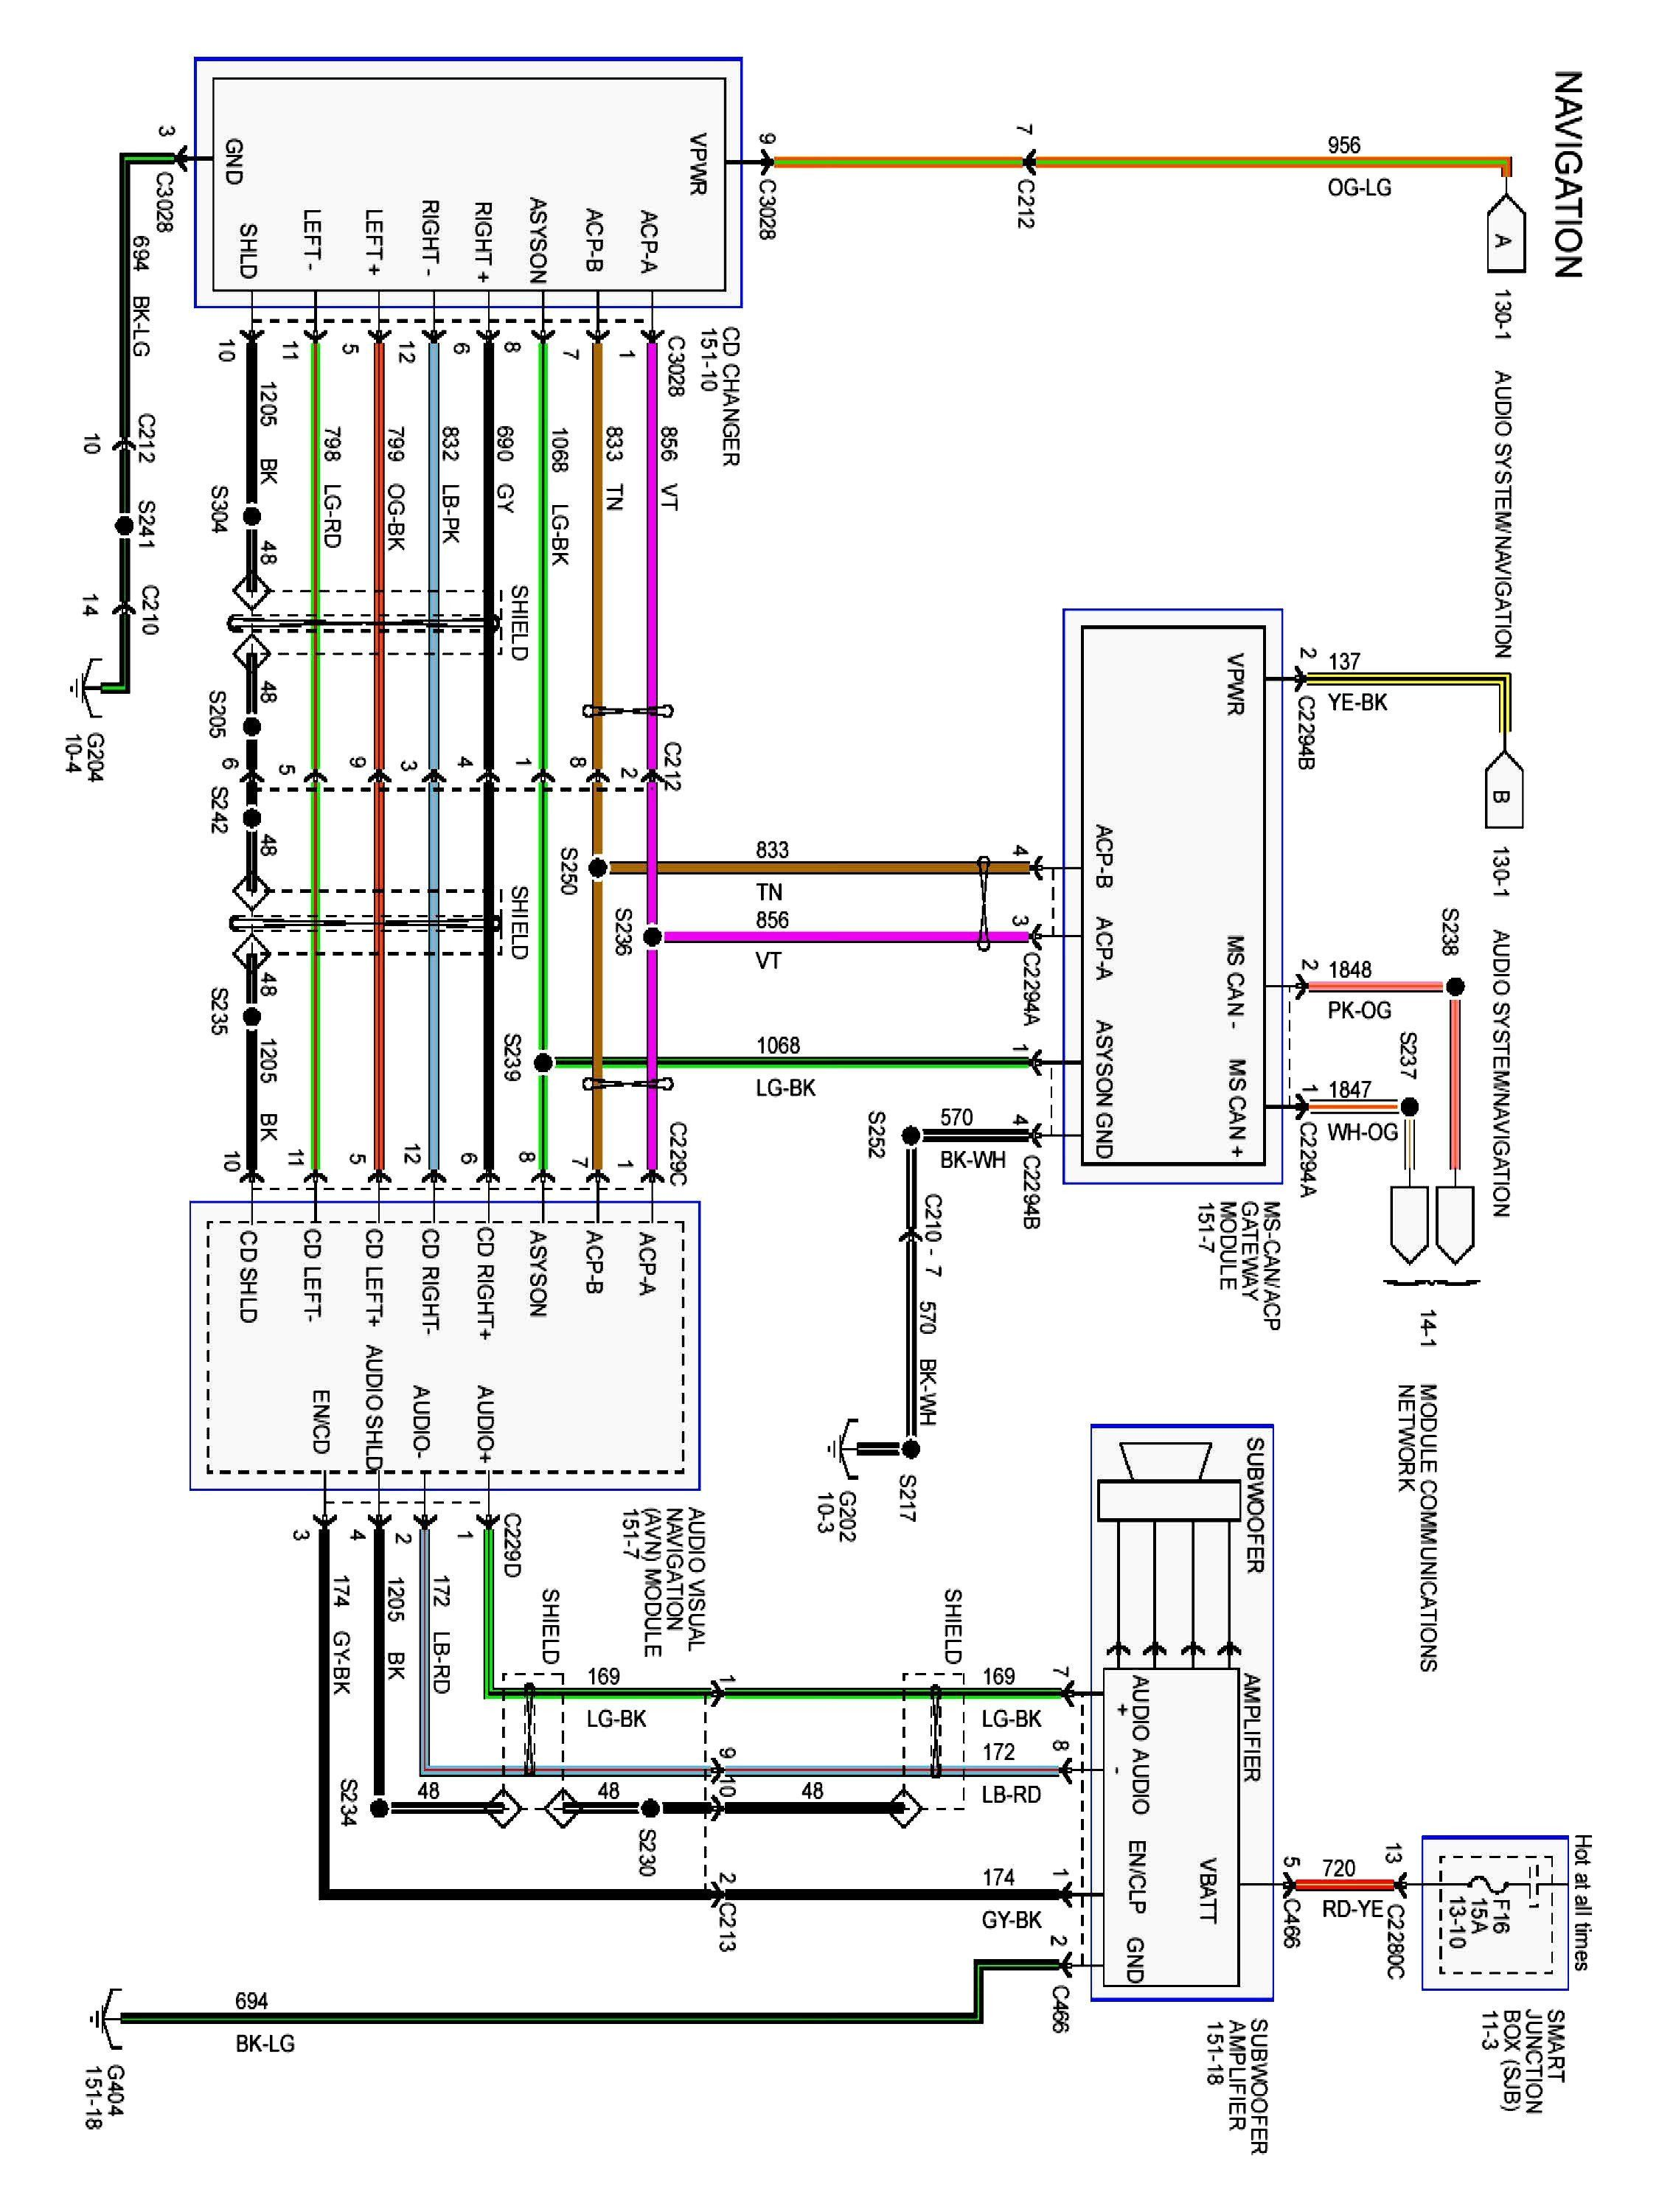 35 Ford Head Light Switch Wiring Diagram Ford expedition